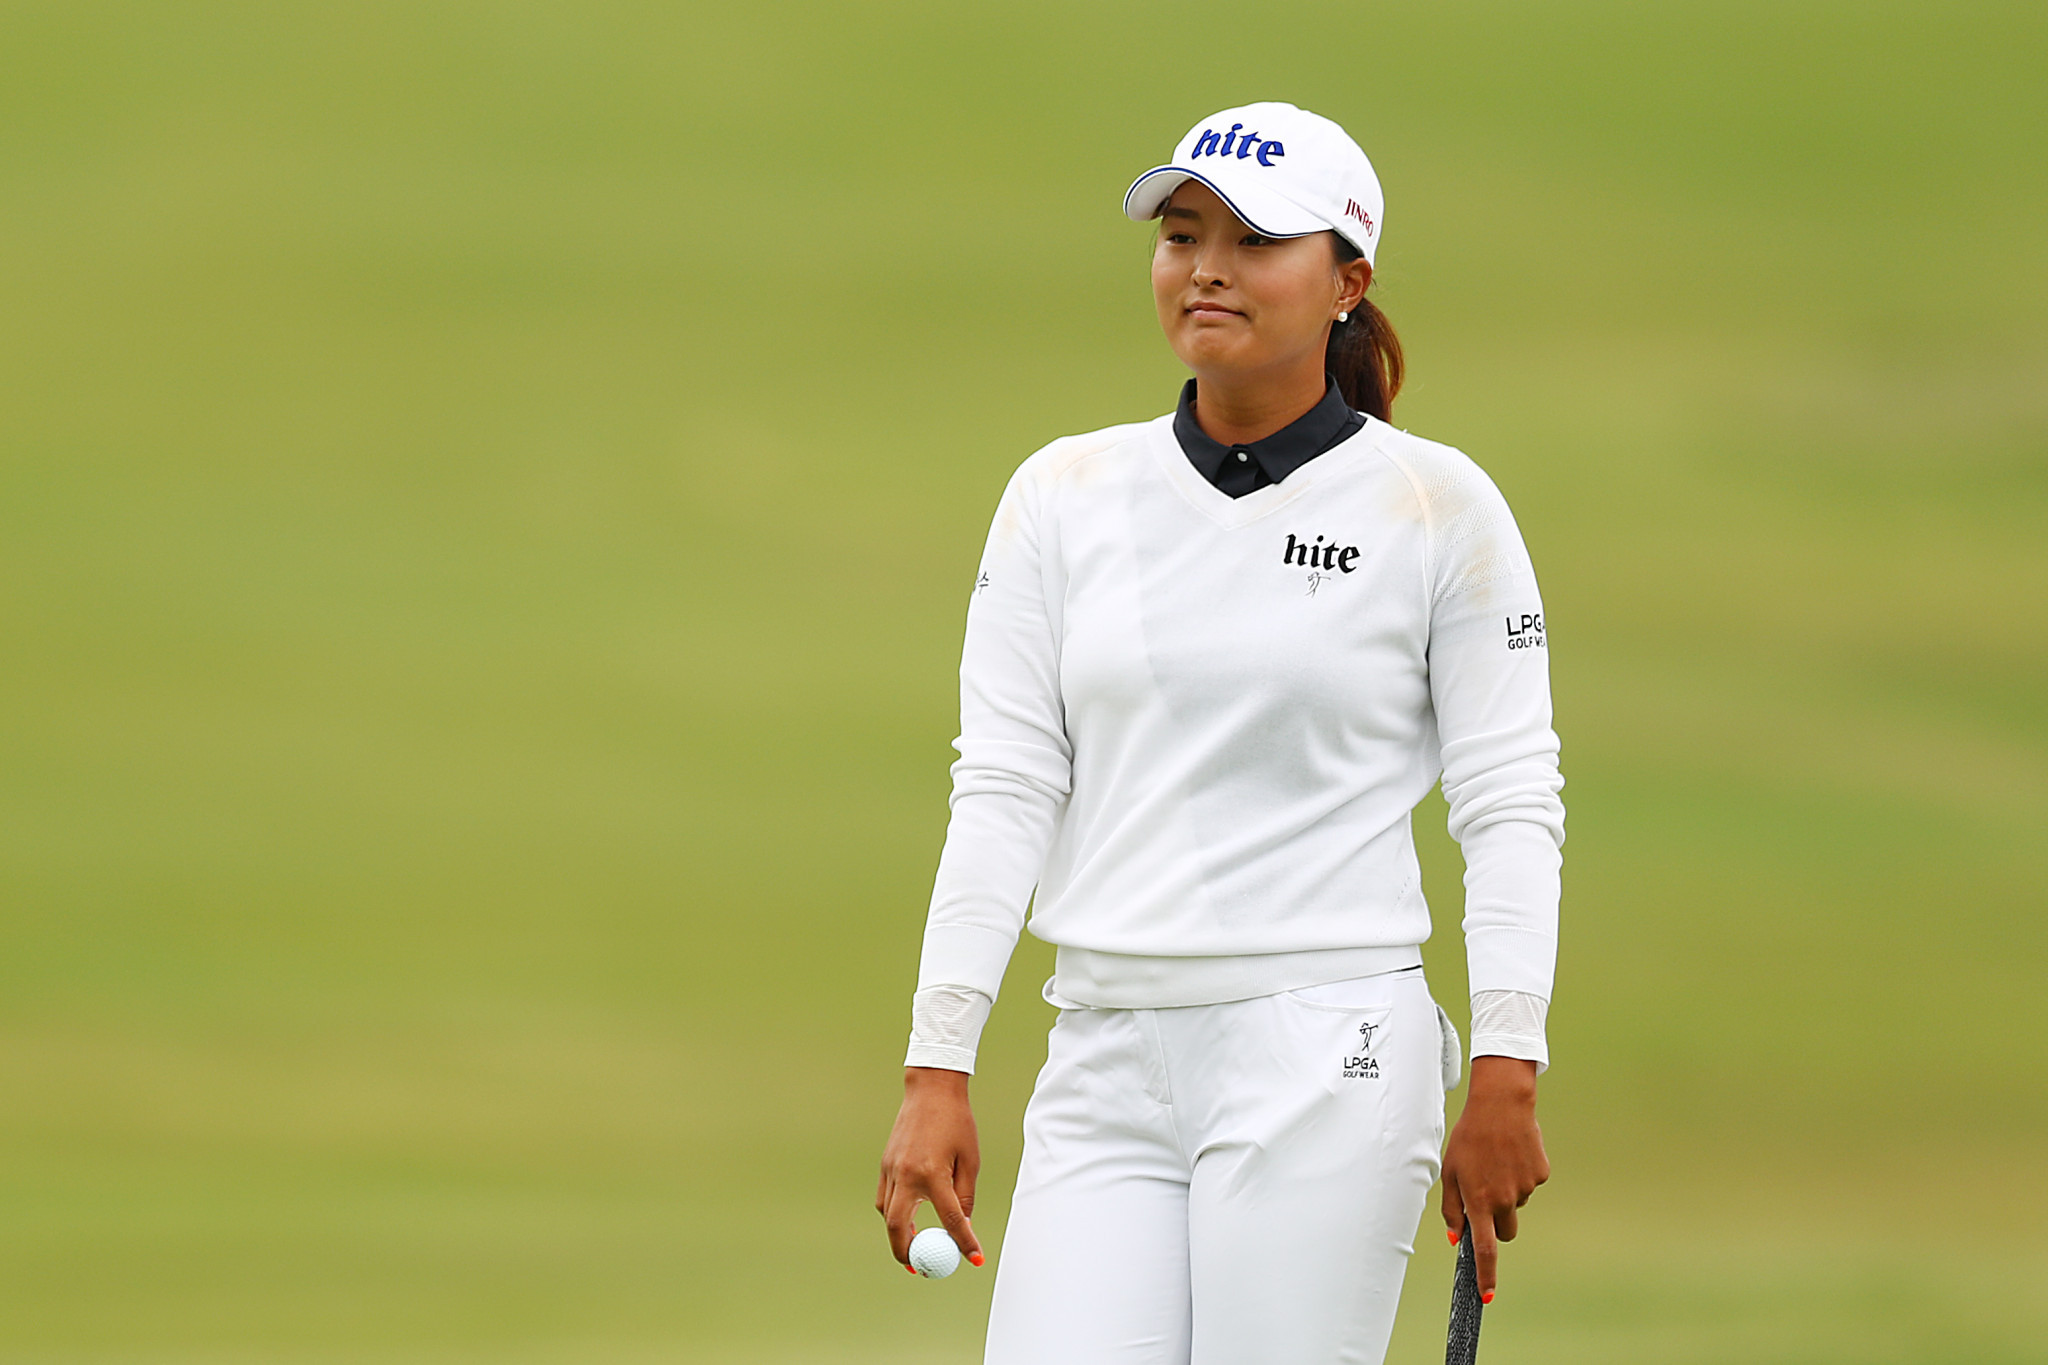 Seven-figure first prize on offer for first time at US Women's Open